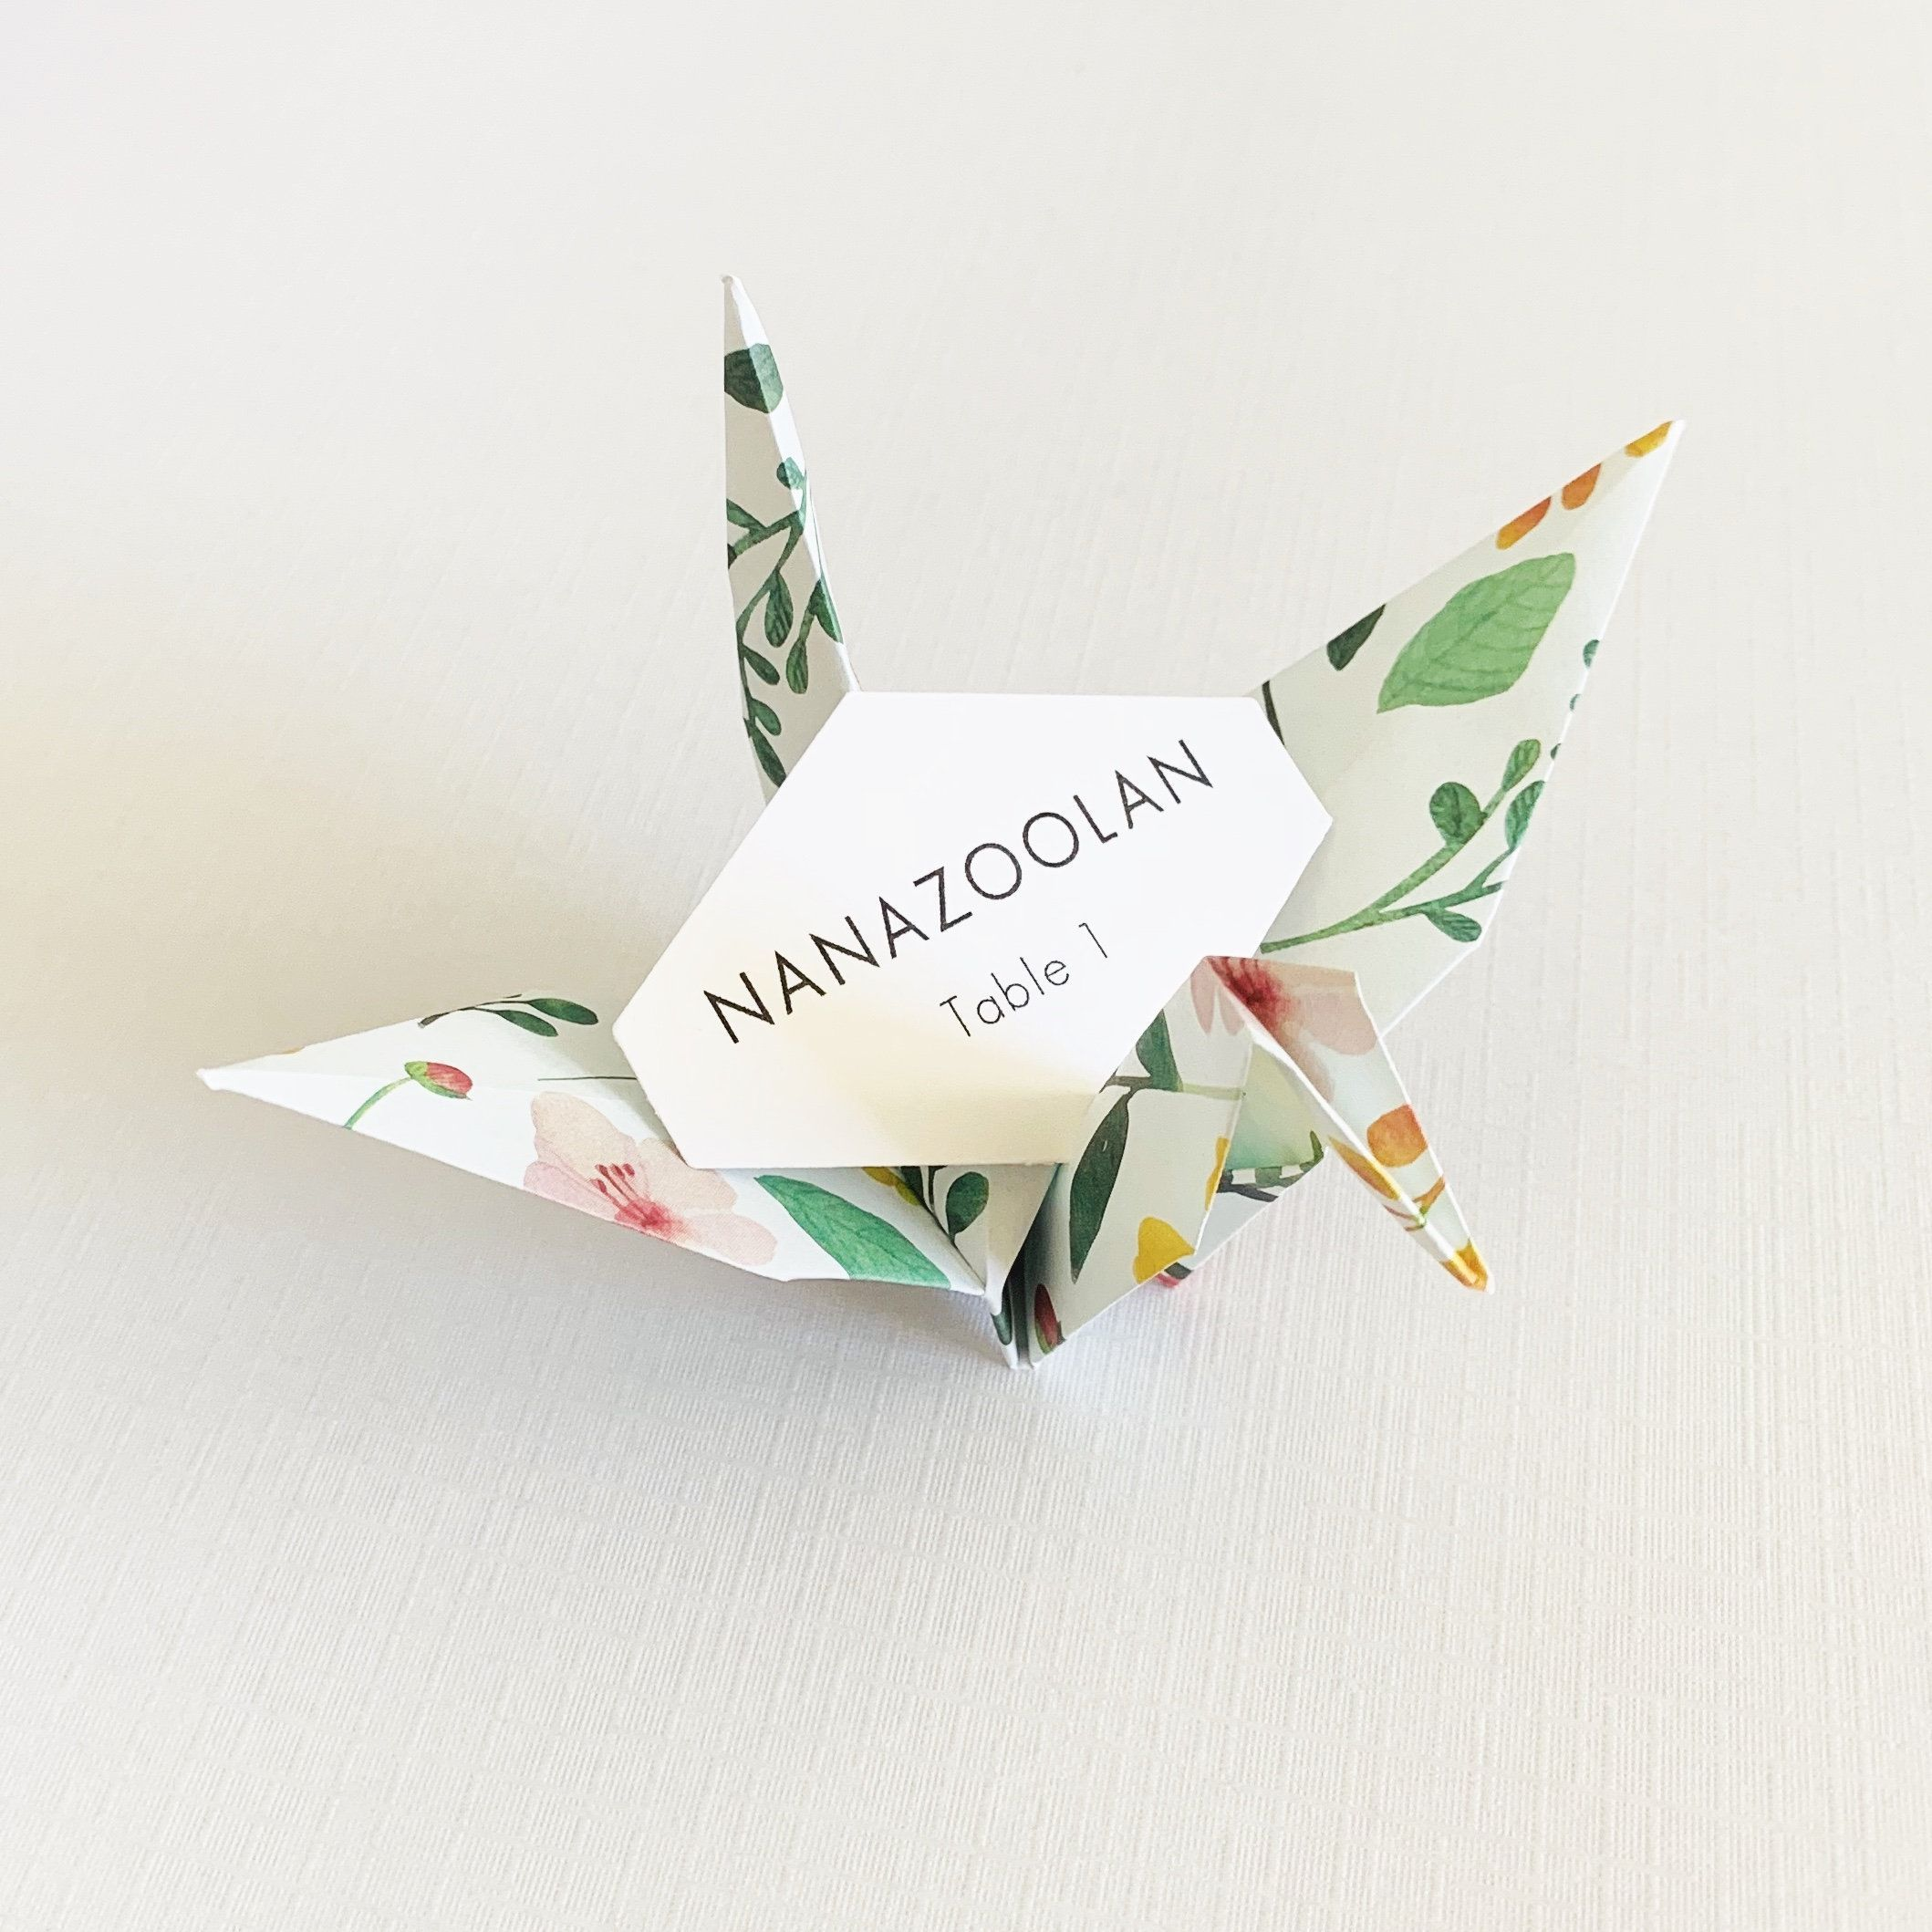 Flower blossoms origami crane guest name placecards spring